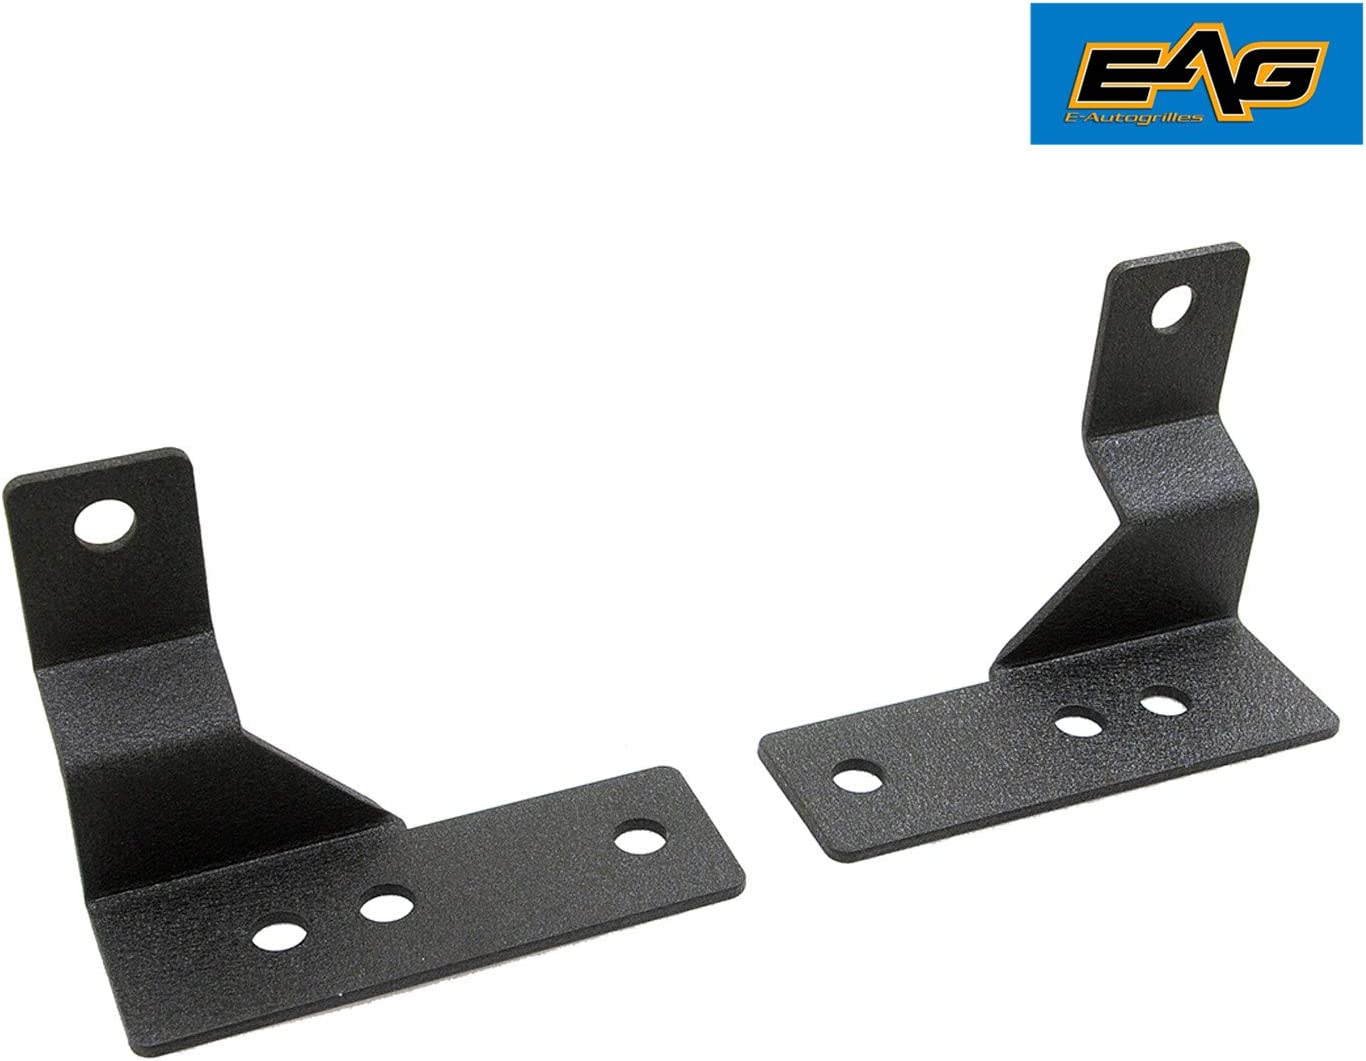 EAG 20W 2x2 LED Pod Light with Rear Bumper Mount Fit for 18-20 Jeep Wrangler JL